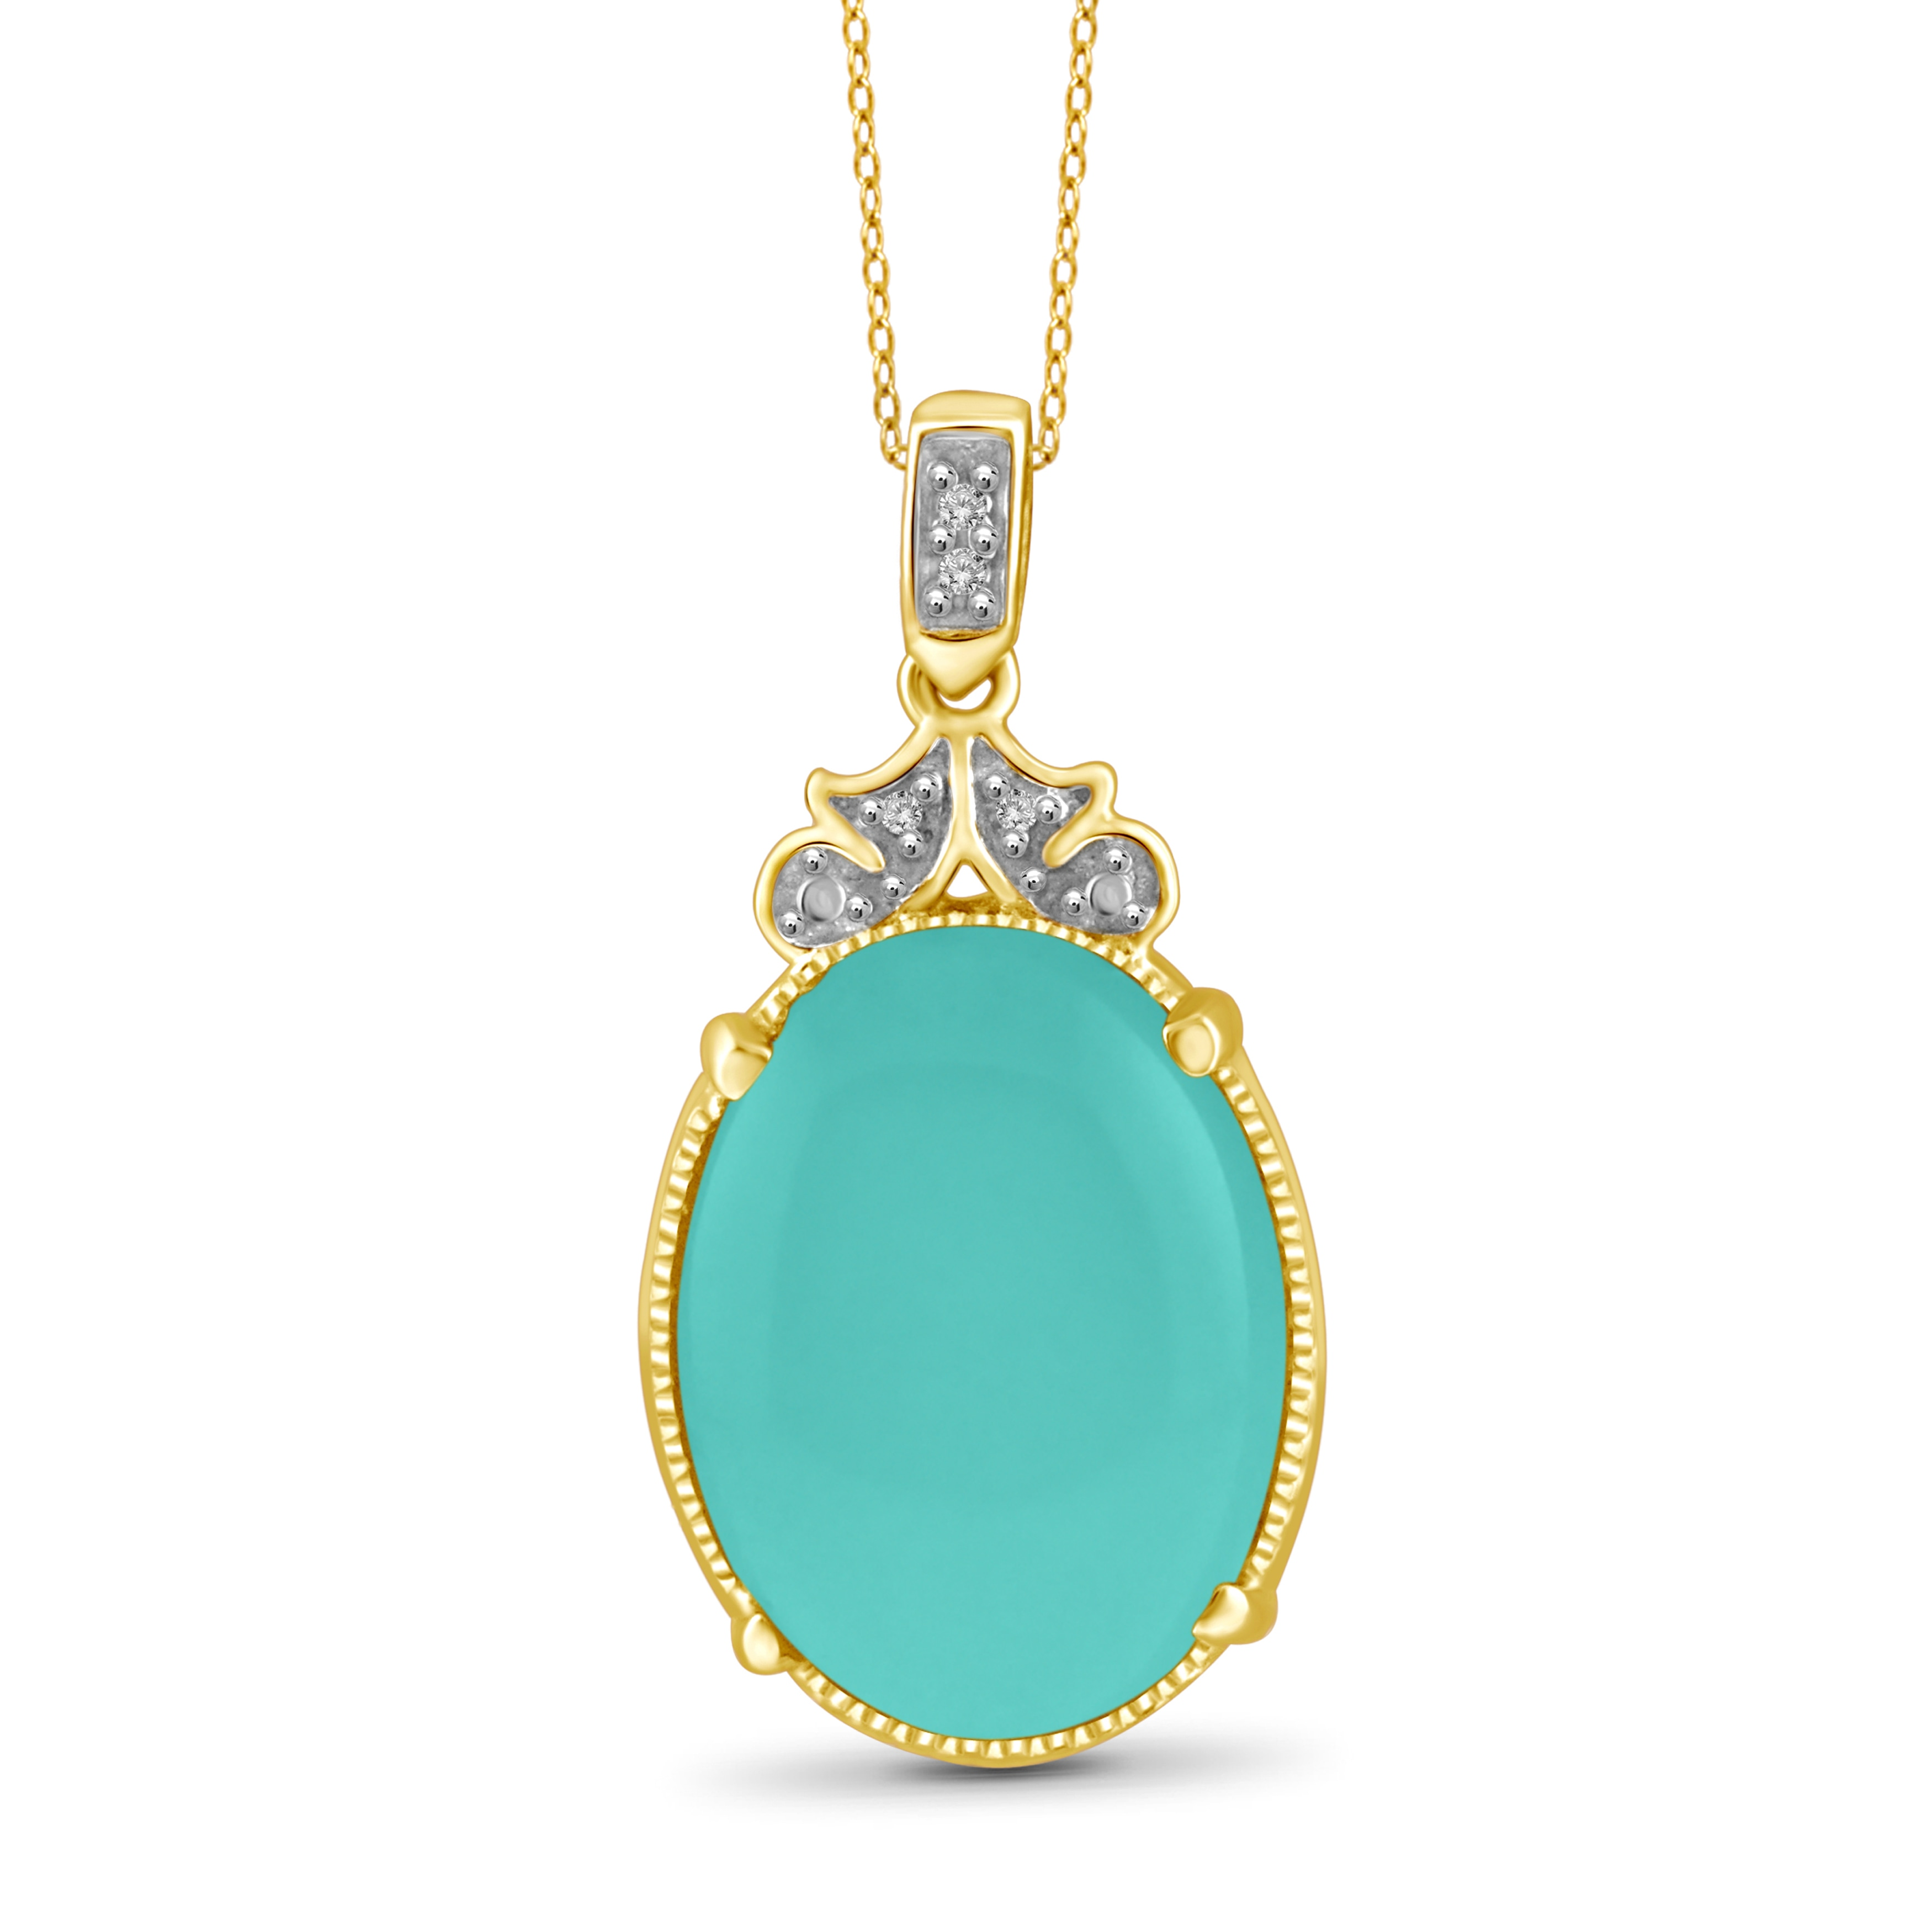 JewelonFire Sterling Silver Genuine Chalcedony Gemstone and White Diamond Accent Pendant by Overstock